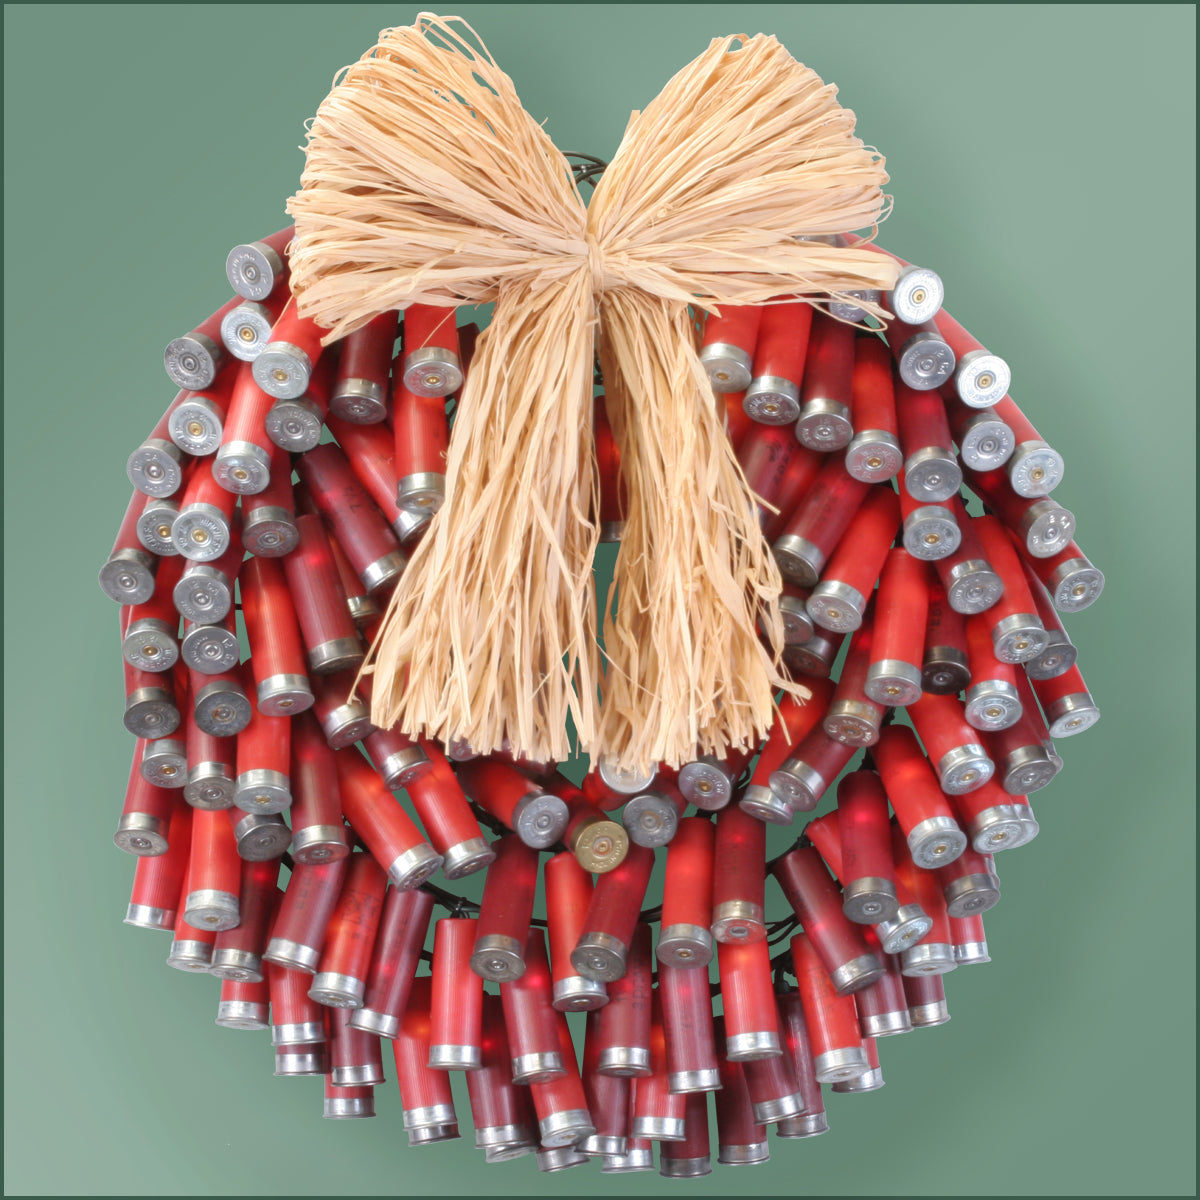 Light Set - Shotgun Shell Lighted Wreath - 150 Lights - Red